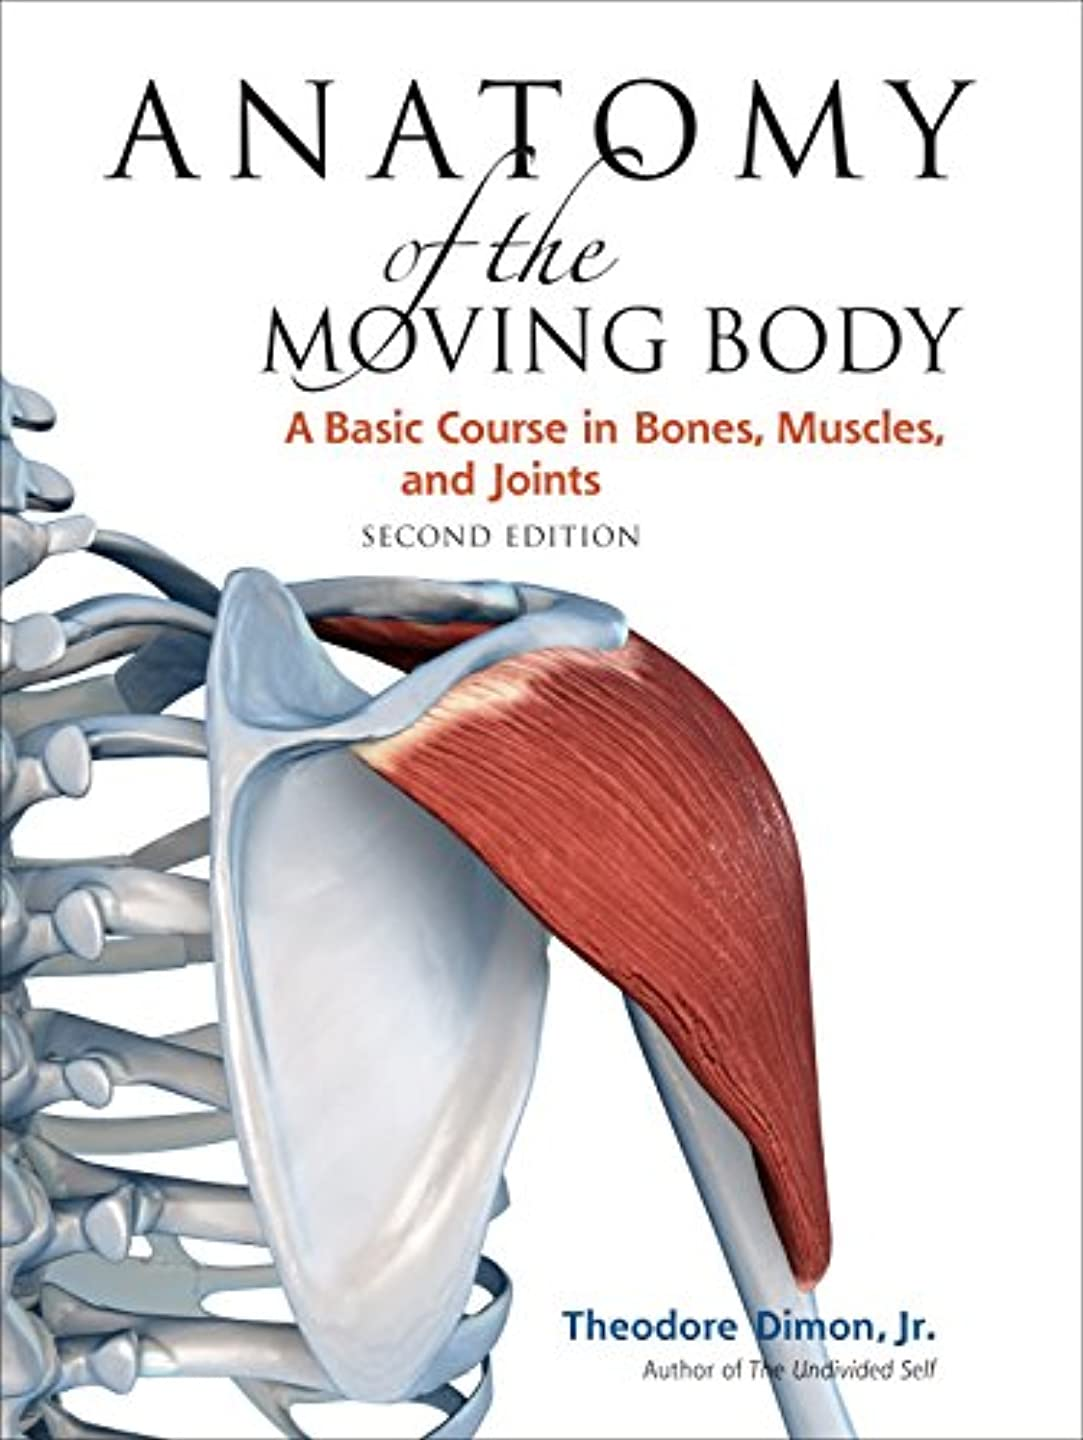 労苦ペルセウス和らげるAnatomy of the Moving Body, Second Edition: A Basic Course in Bones, Muscles, and Joints